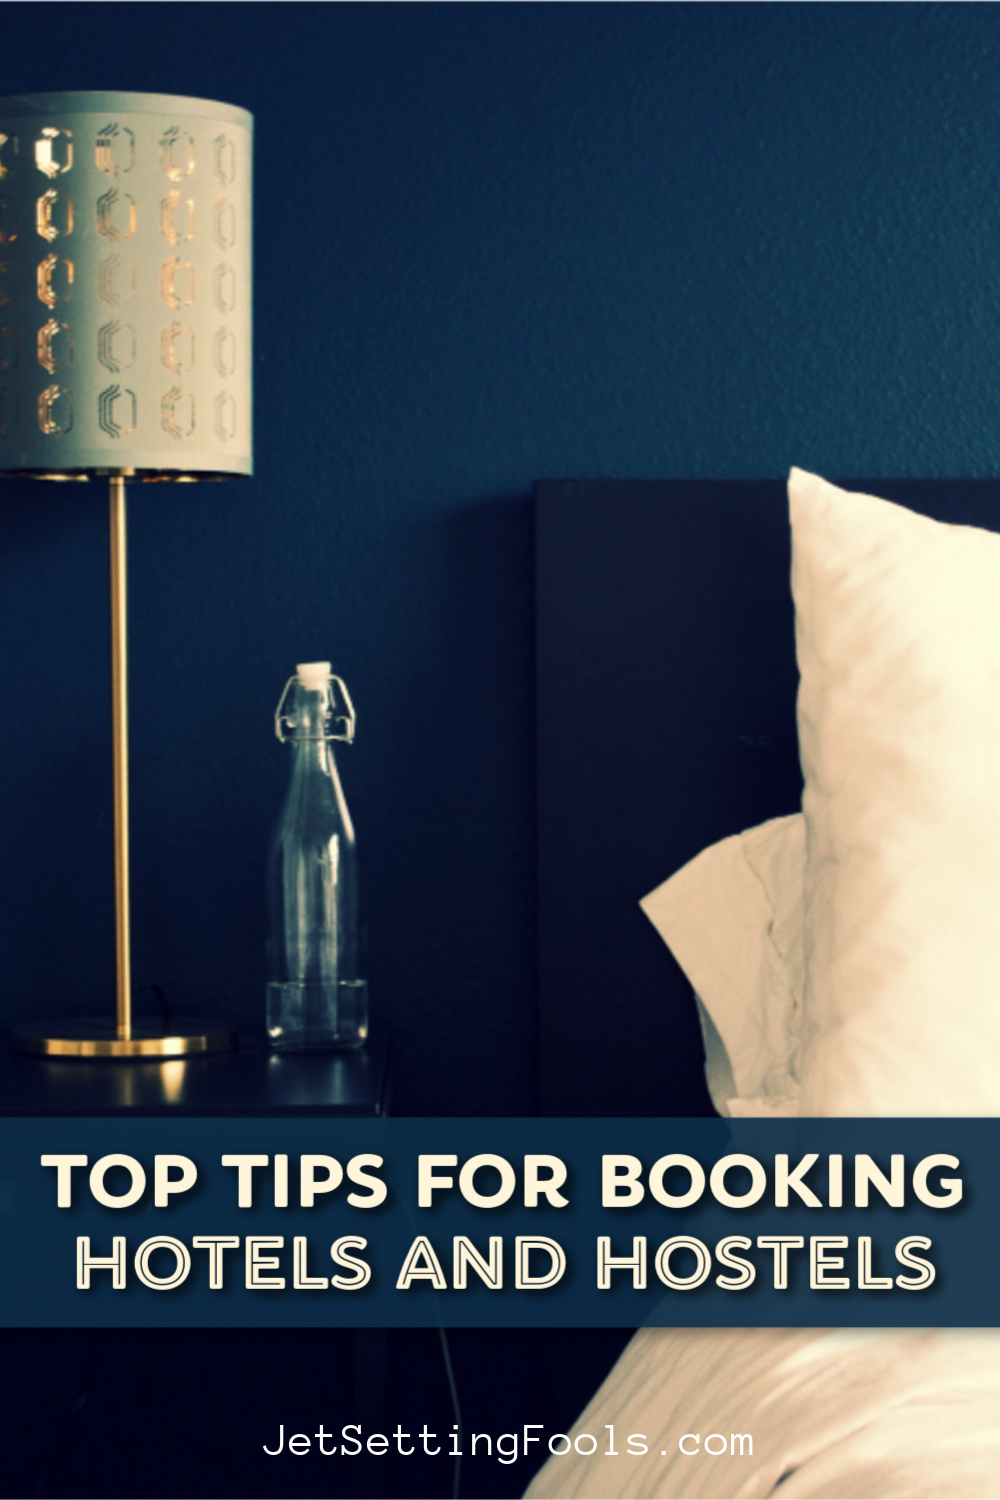 Tips for Booking Hotels and Hostels by JetSettingFools.com